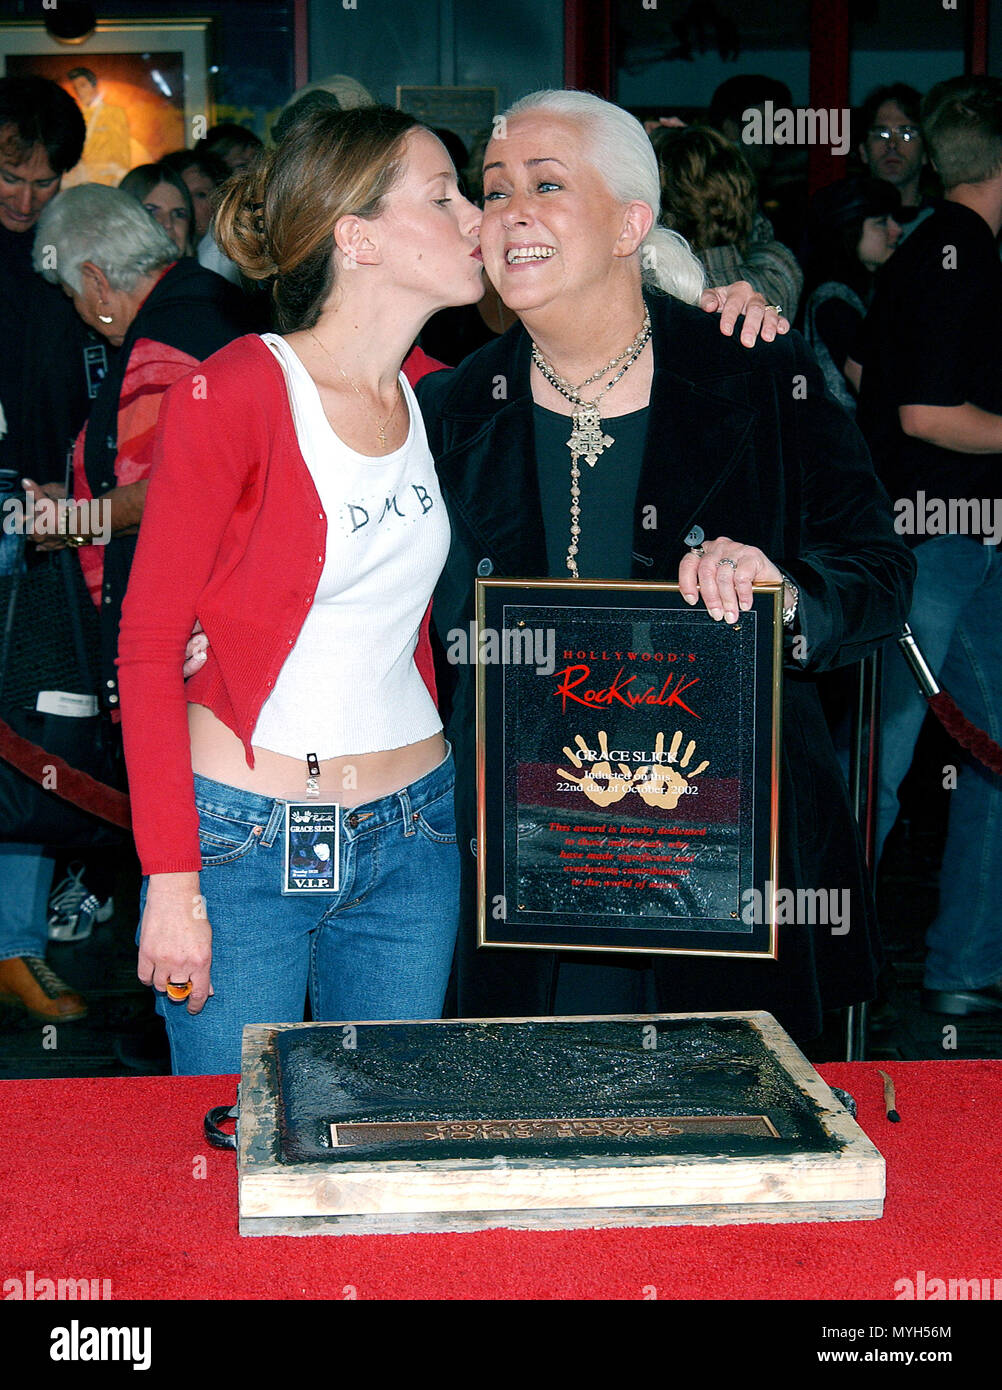 Grace Slick received a kiss from her daughter China Kanter after been inducted on the Rock Walk of Fame at the Guitar Center in Los Angeles. October 22, 2002.            -            GraceSlick_KanterChina11.jpgGraceSlick_KanterChina11  Event in Hollywood Life - California, Red Carpet Event, USA, Film Industry, Celebrities, Photography, Bestof, Arts Culture and Entertainment, Topix Celebrities fashion, Best of, Hollywood Life, Event in Hollywood Life - California, movie celebrities, TV celebrities, Music celebrities, Topix, Bestof, Arts Culture and Entertainment, Photography,    inquiry tsuni@ - Stock Image